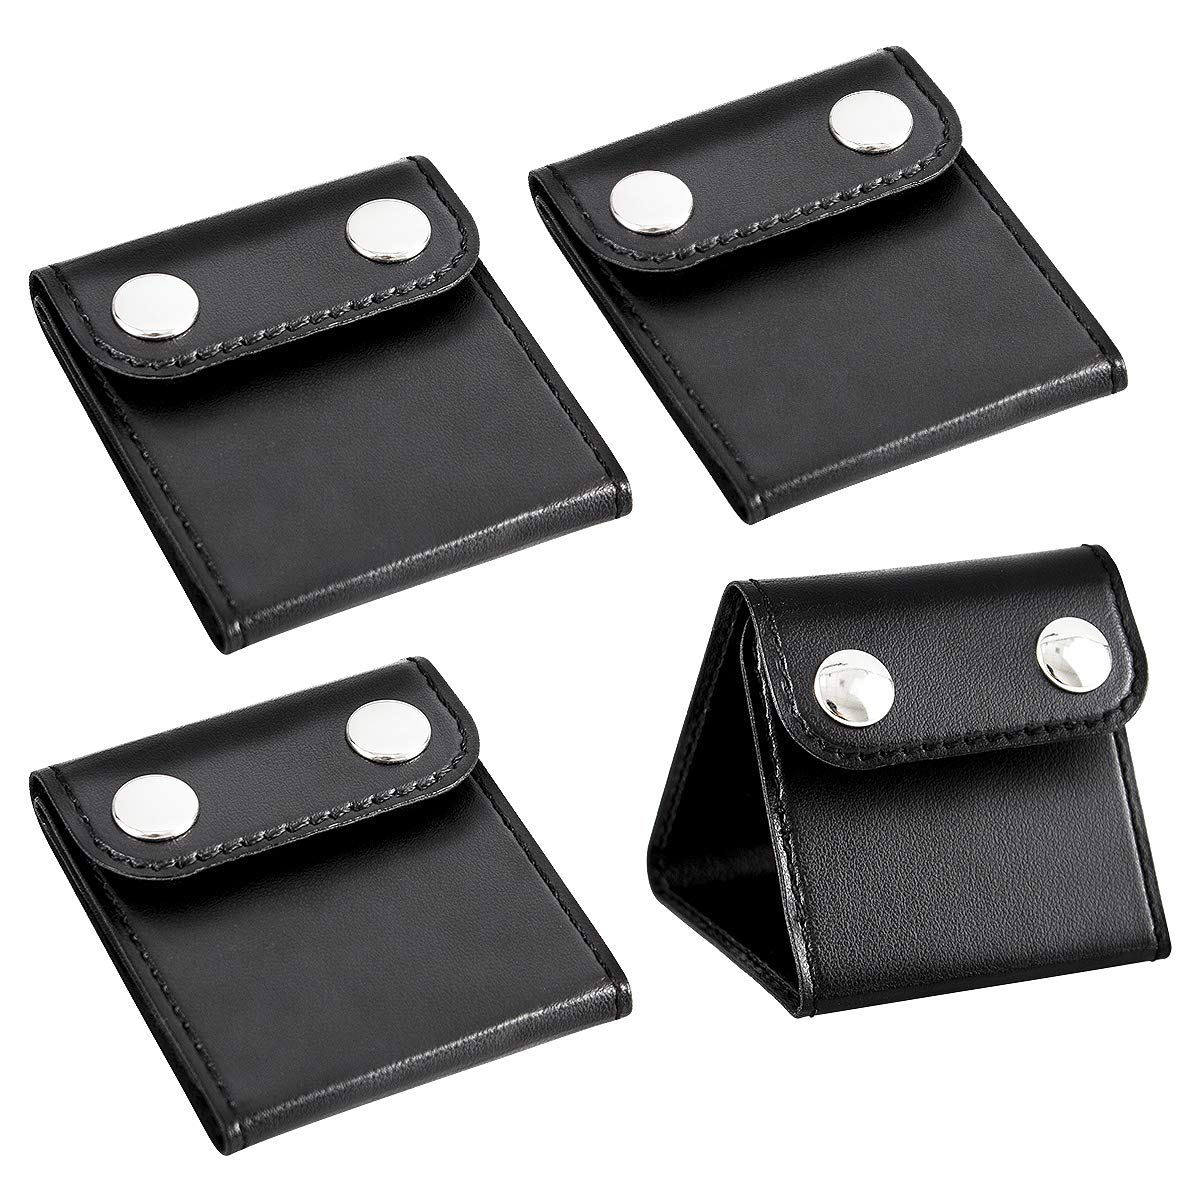 PAMASE 4 Pcs Car Seat Belt Clips Adjusters for Adults and Kids, PU Leather Seatbelt Locking Clips Comfort Universal Auto Shoulder Neck Strap Positioner, Vehicle Seat Belt Covers by PAMASE